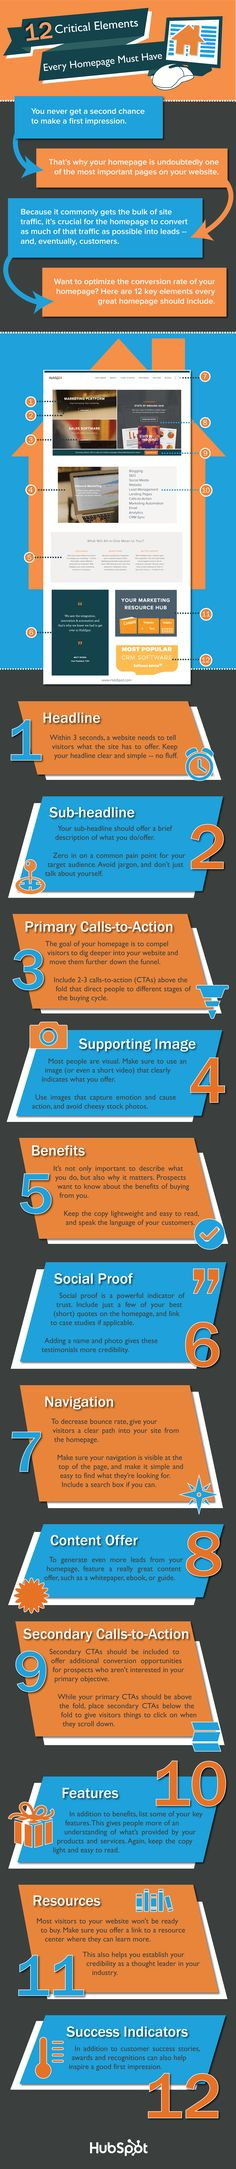 12 Critical Elements Every Website Homepage Must Have [Infographic], via @HubSpot